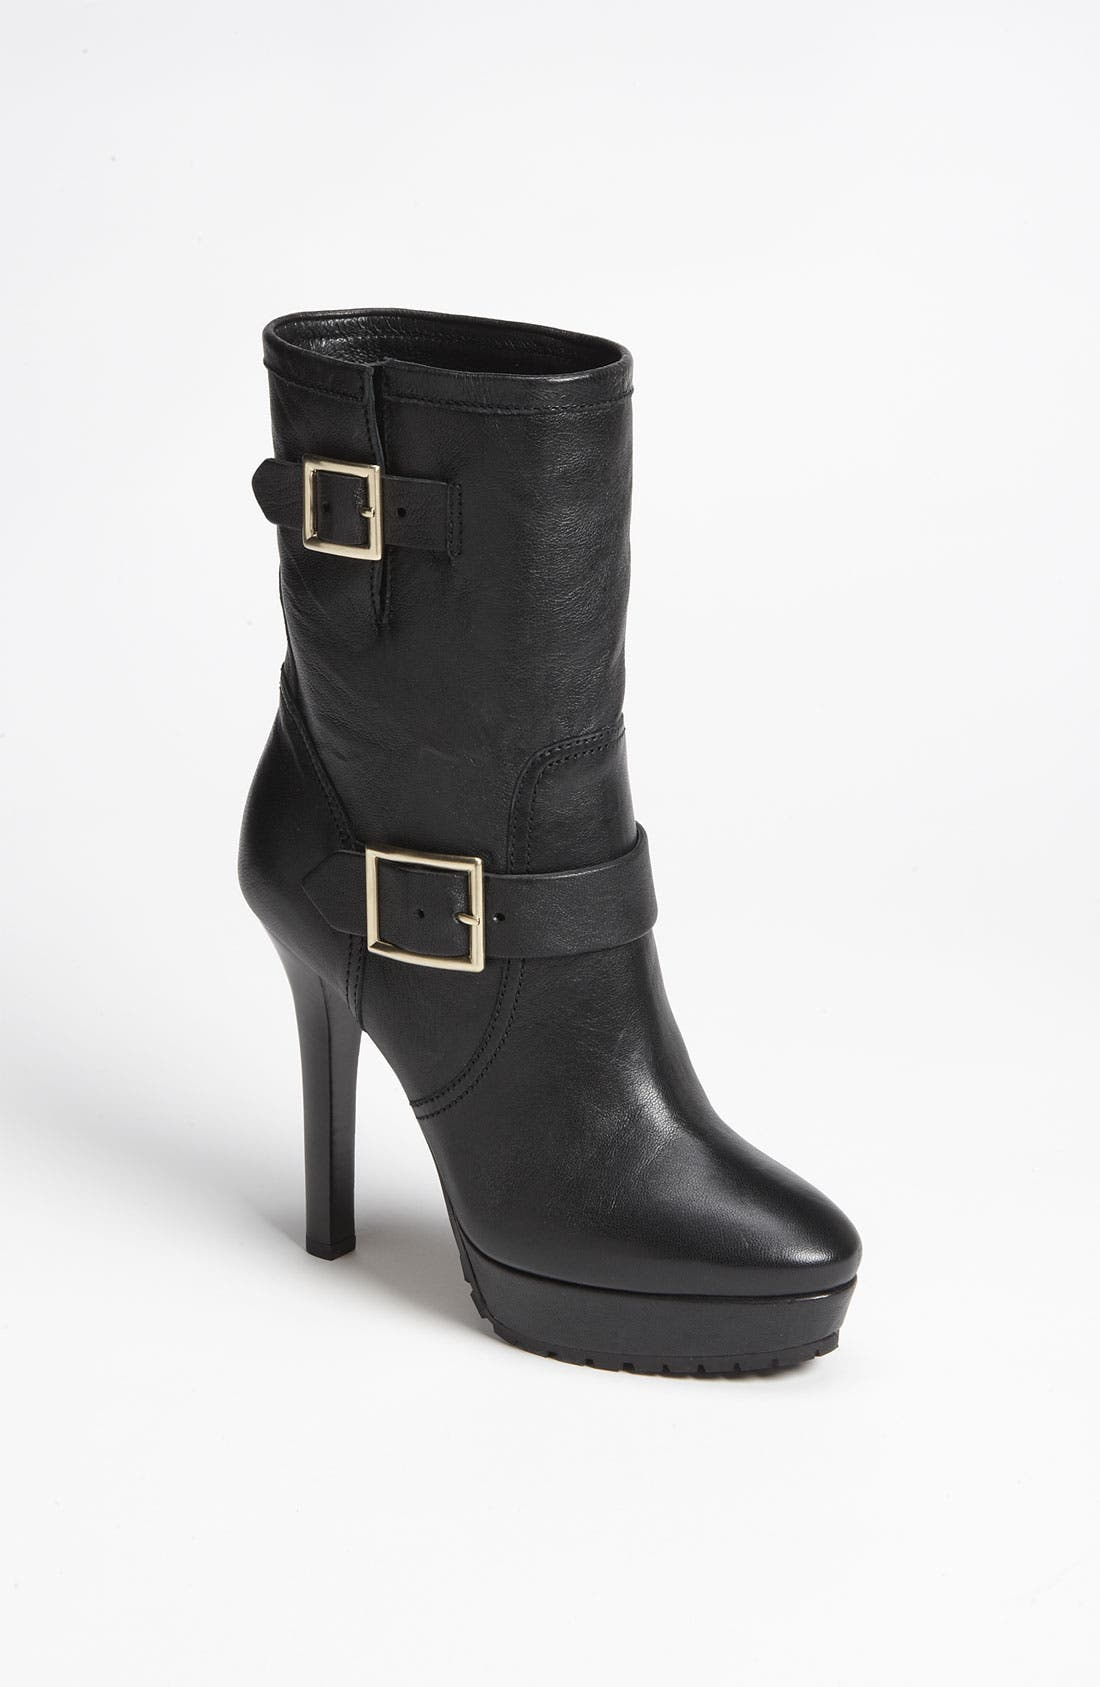 Alternate Image 1 Selected - Jimmy Choo 'Dylan' Biker Mid Boot